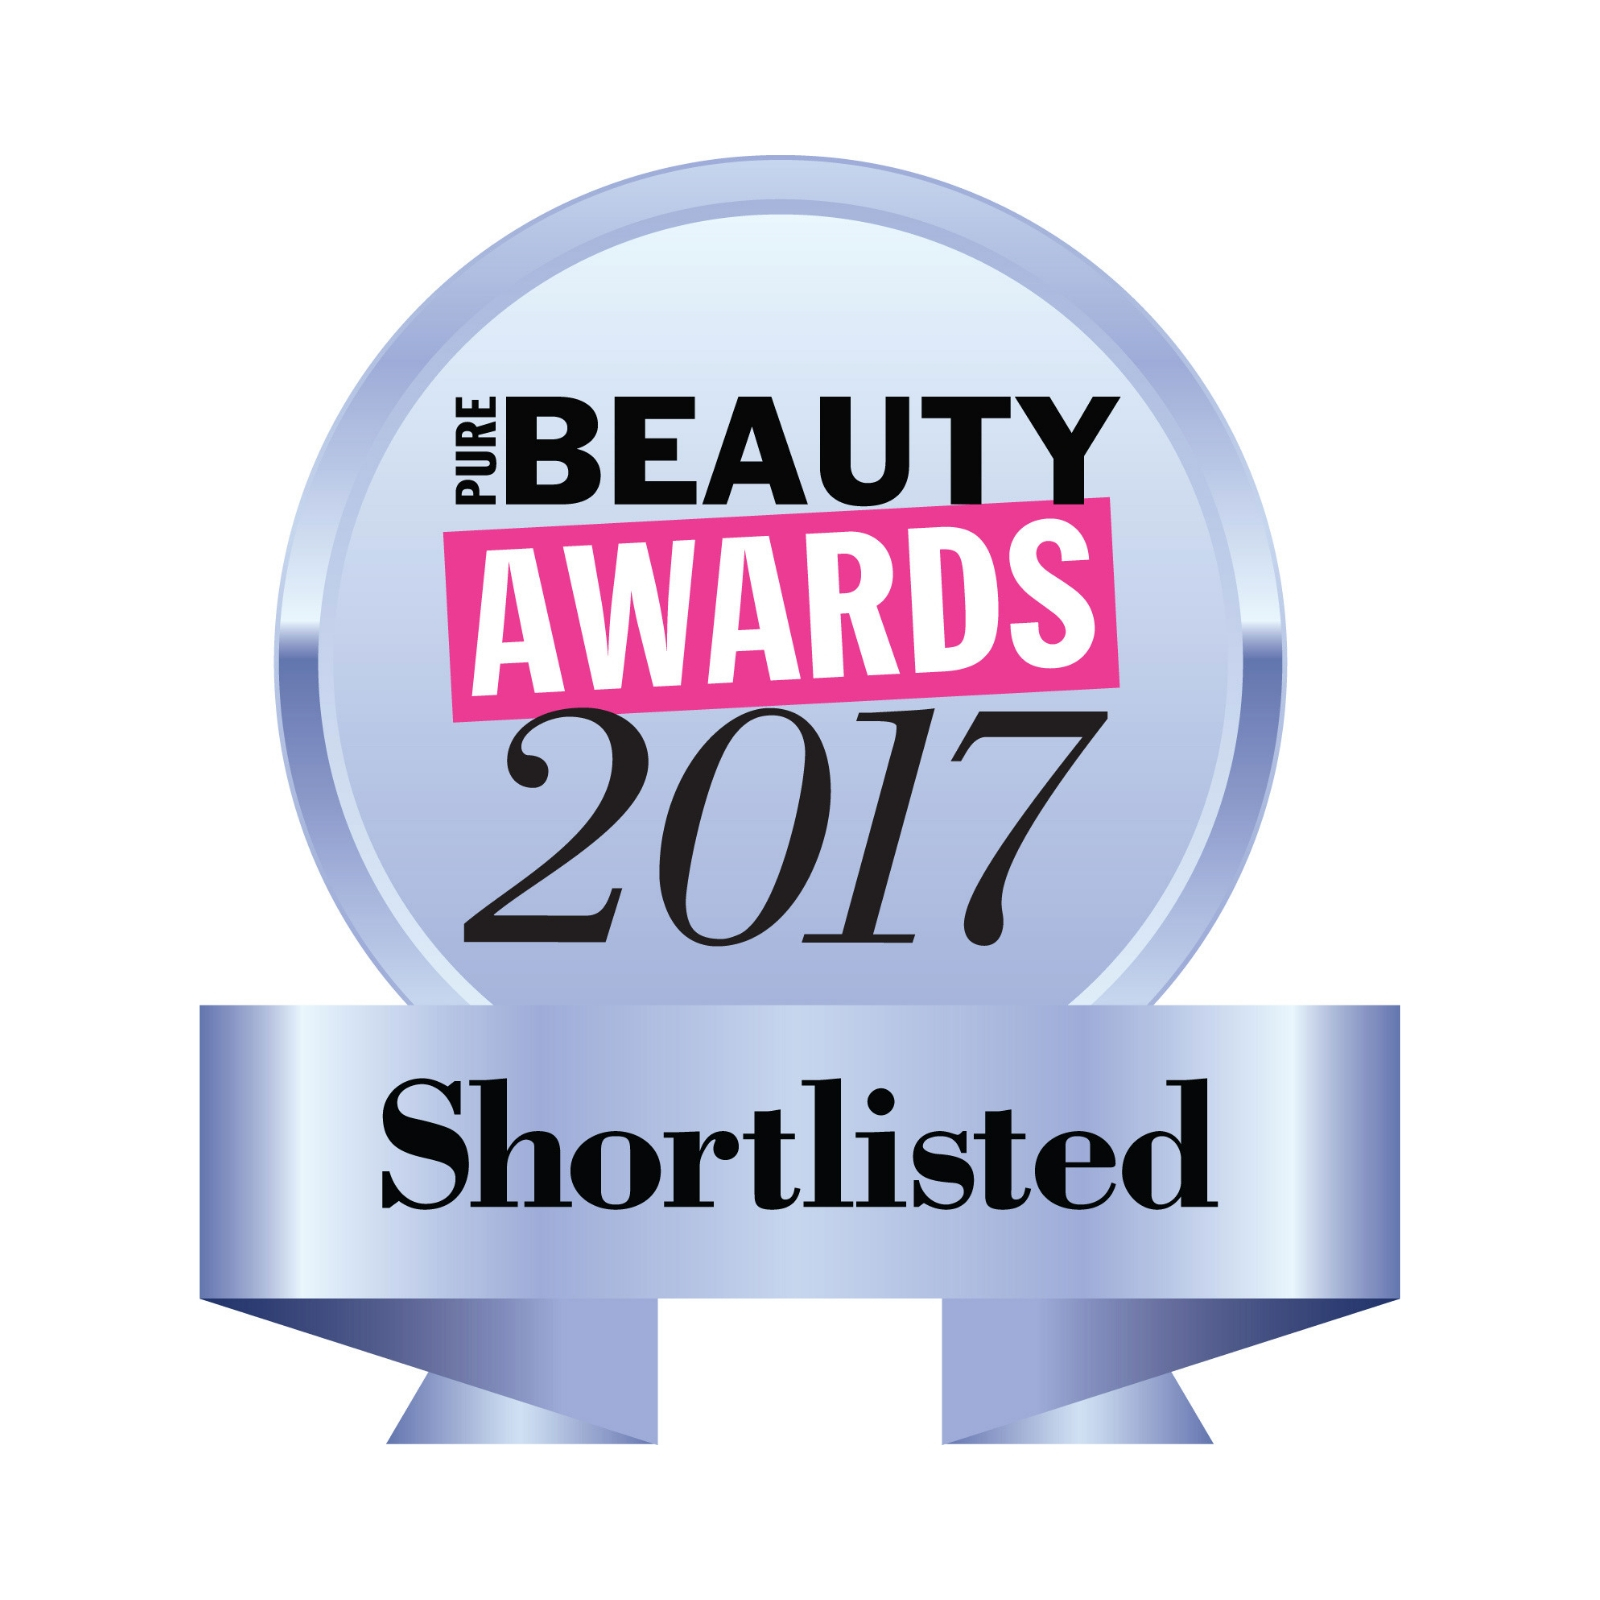 Finalist Best Hair Product, Pure Beauty Magazine Awards: Styling Mist for Natural Hold and Volume, best for fine hair